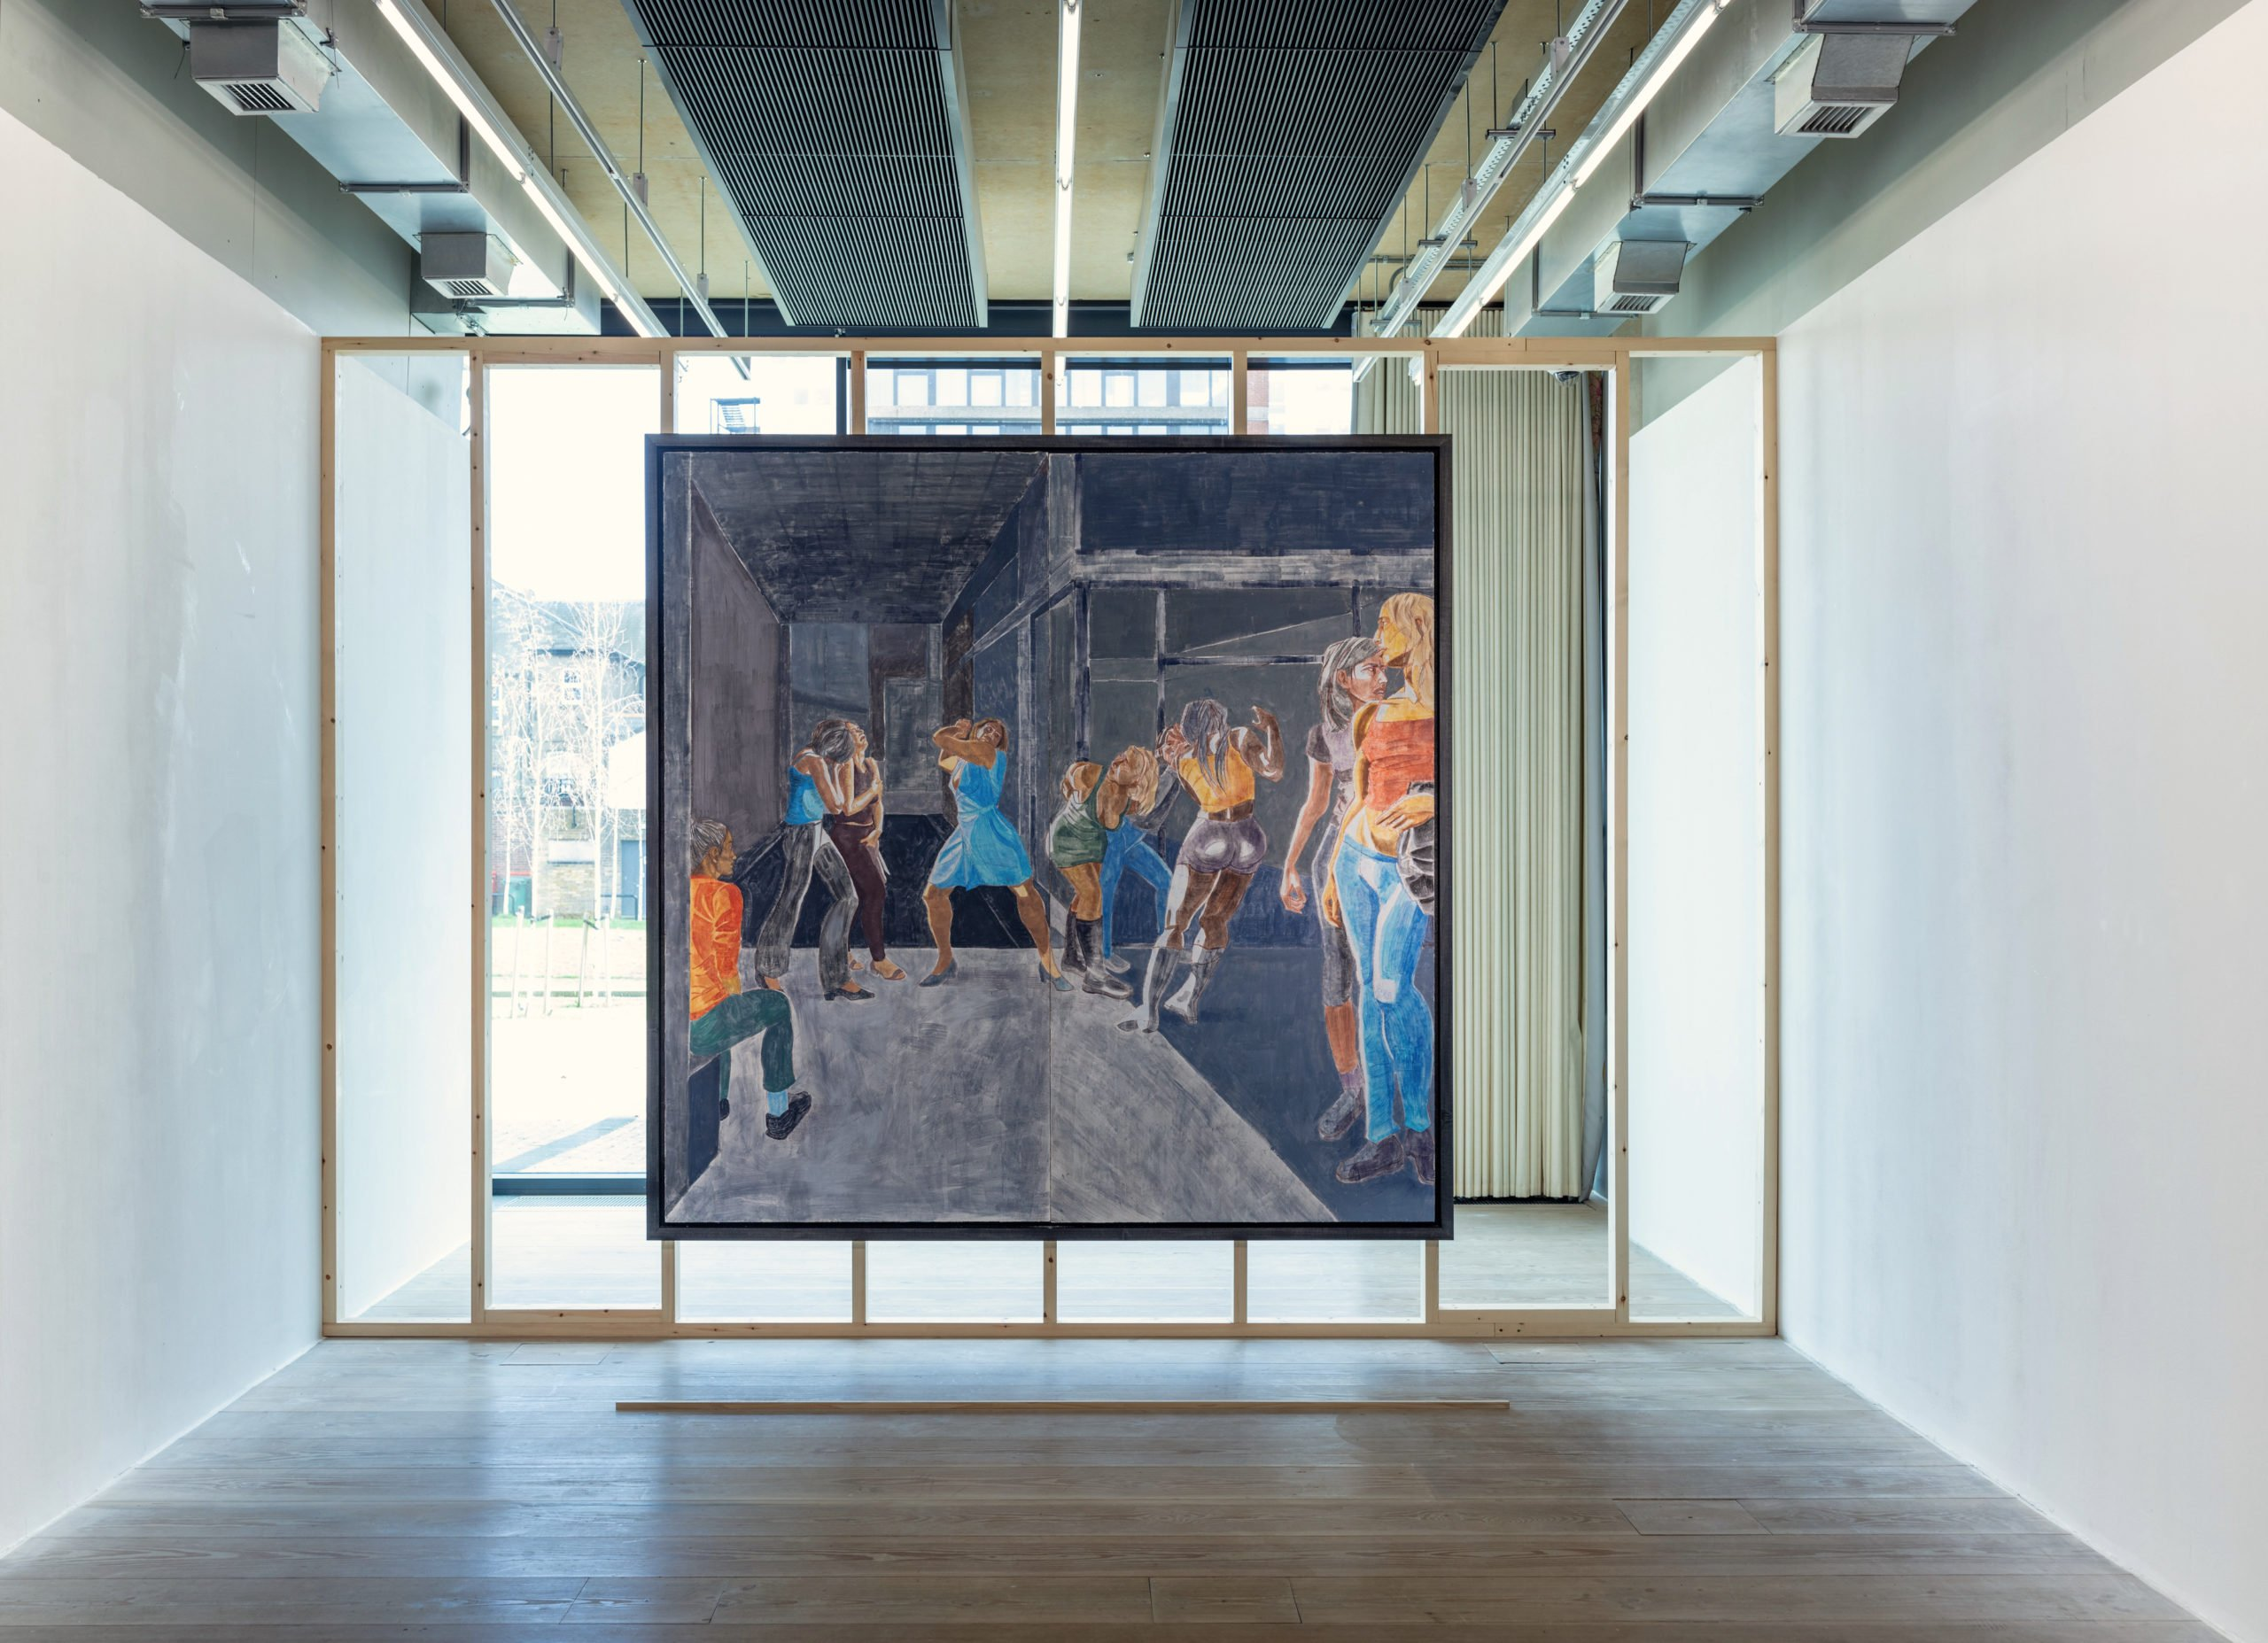 Humber Street Gallery to host first solo institutional exhibition by artists Hannah Quinlan and Rosie Hastings